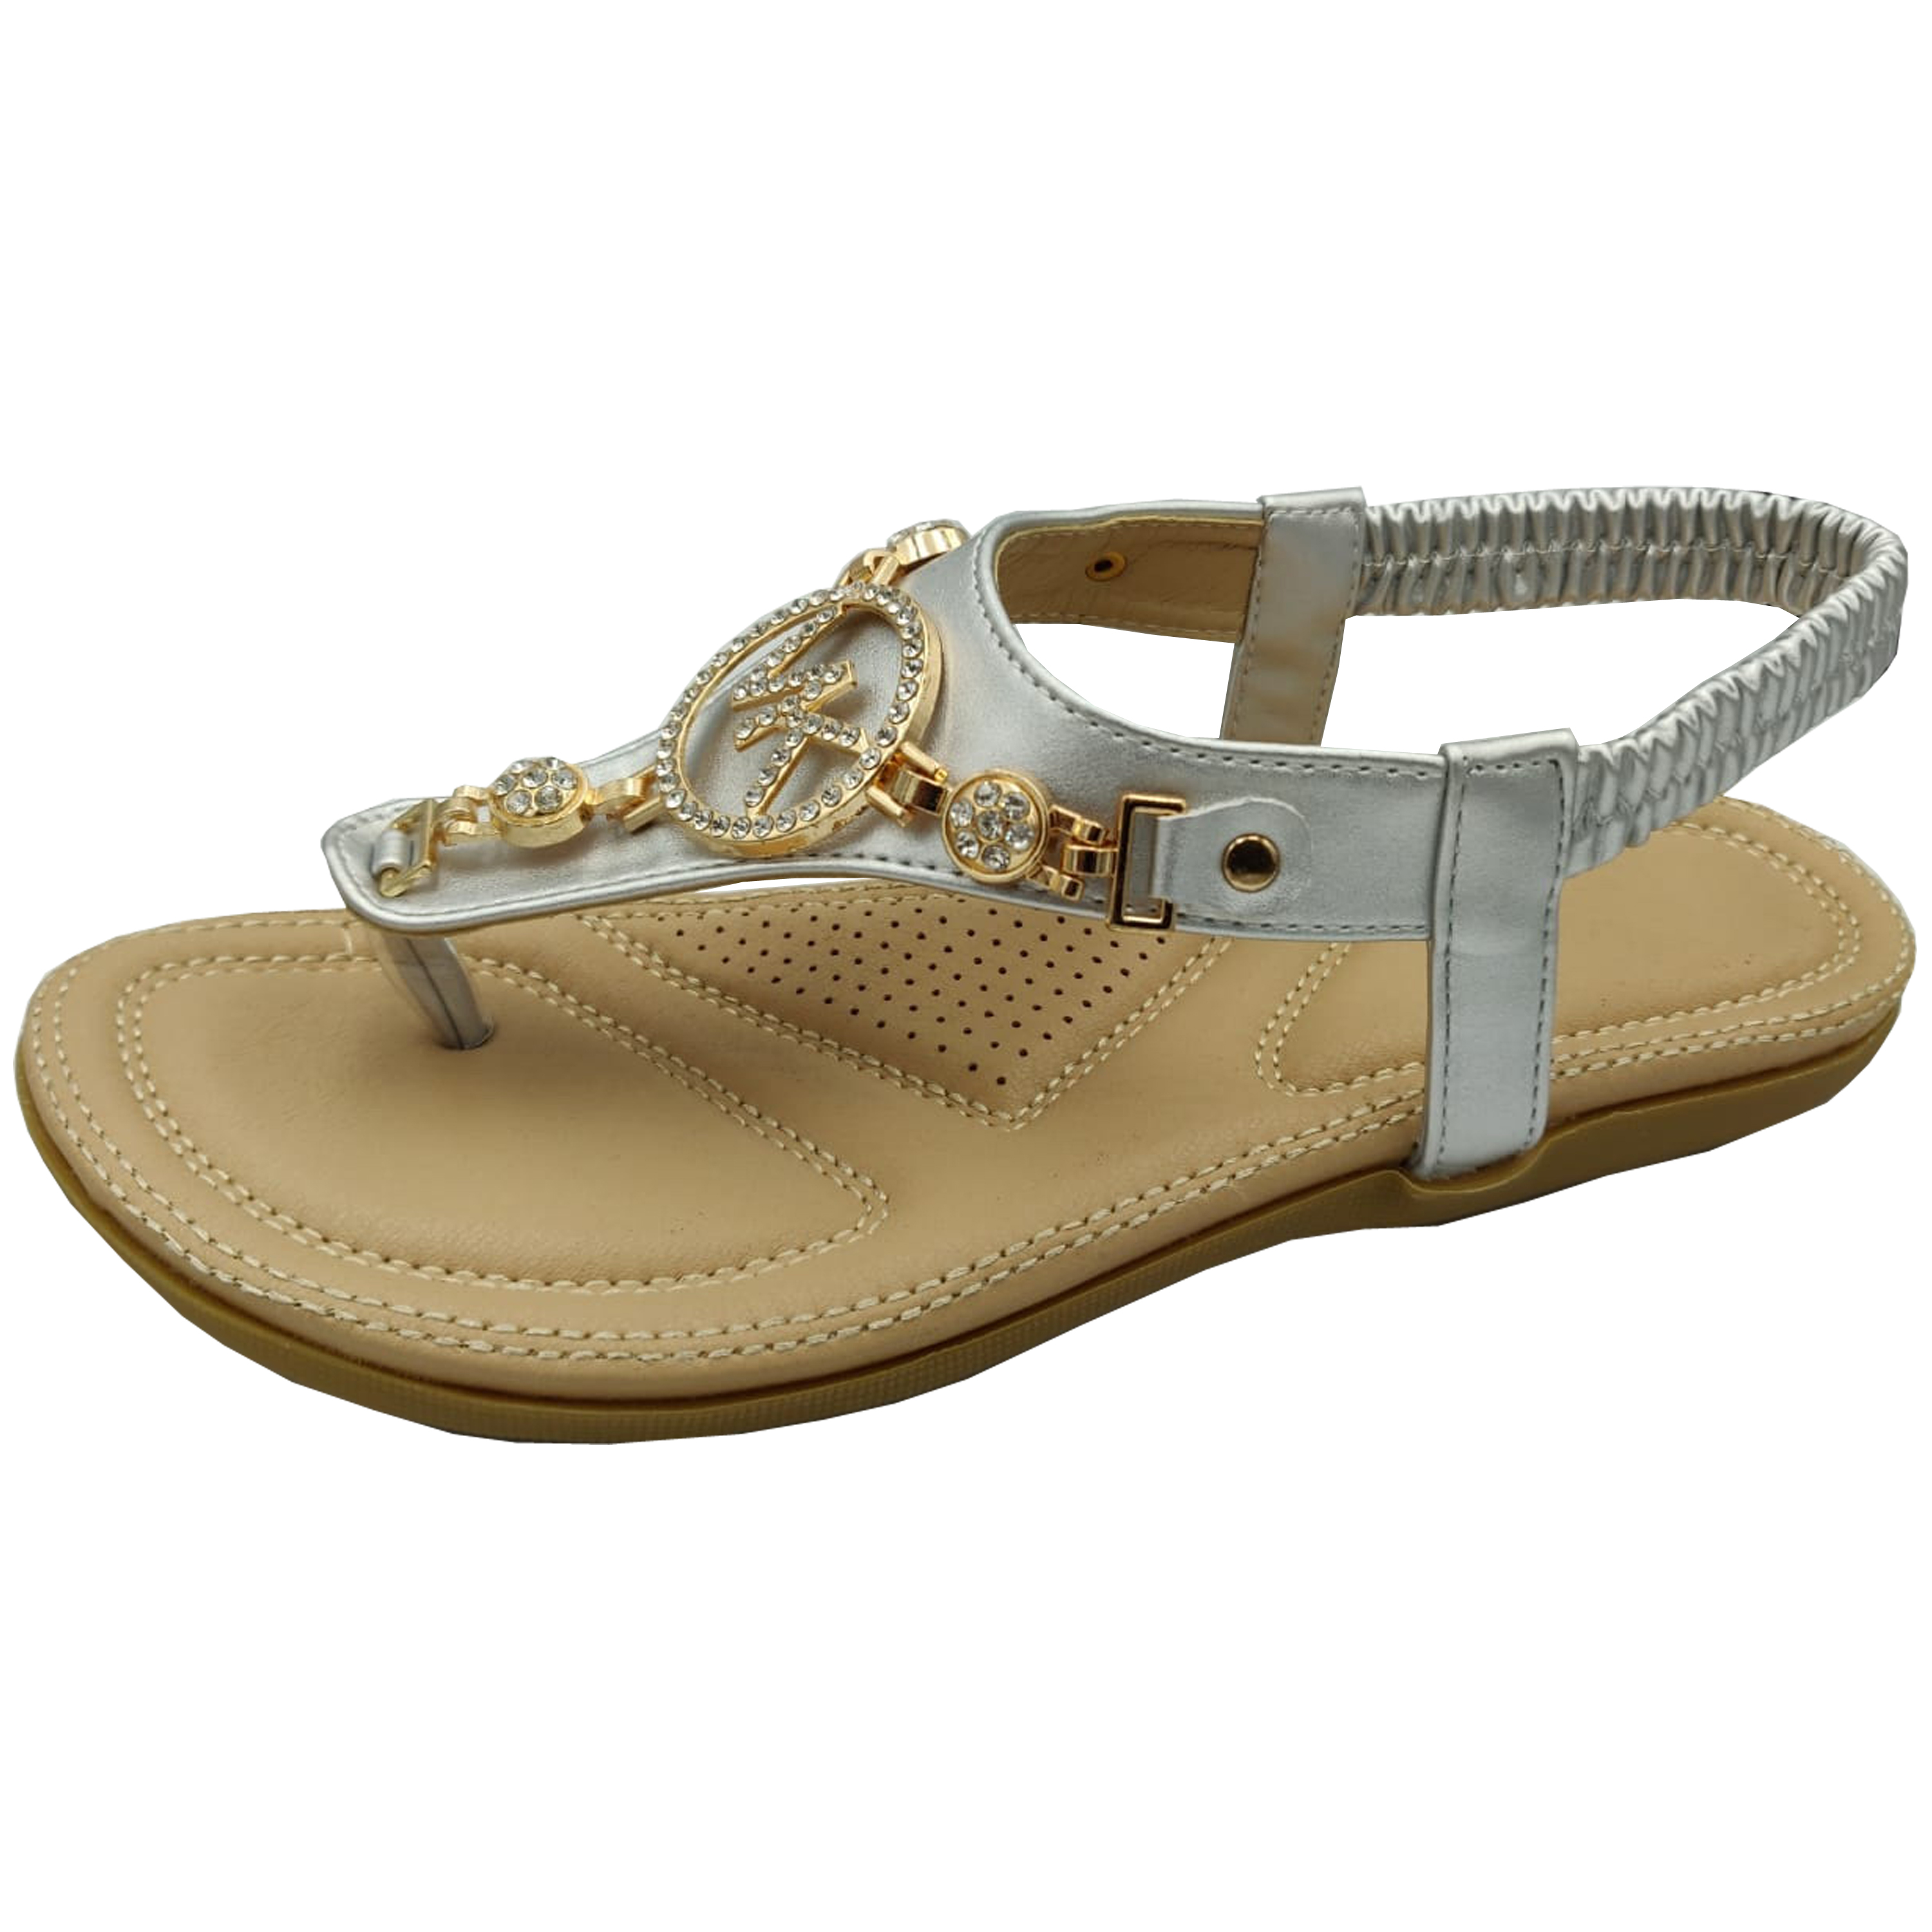 Ladies-Flat-Sandals-Womens-Diamante-Sling-Back-Toe-Post-Shoes-Summer-Fashion-New thumbnail 8